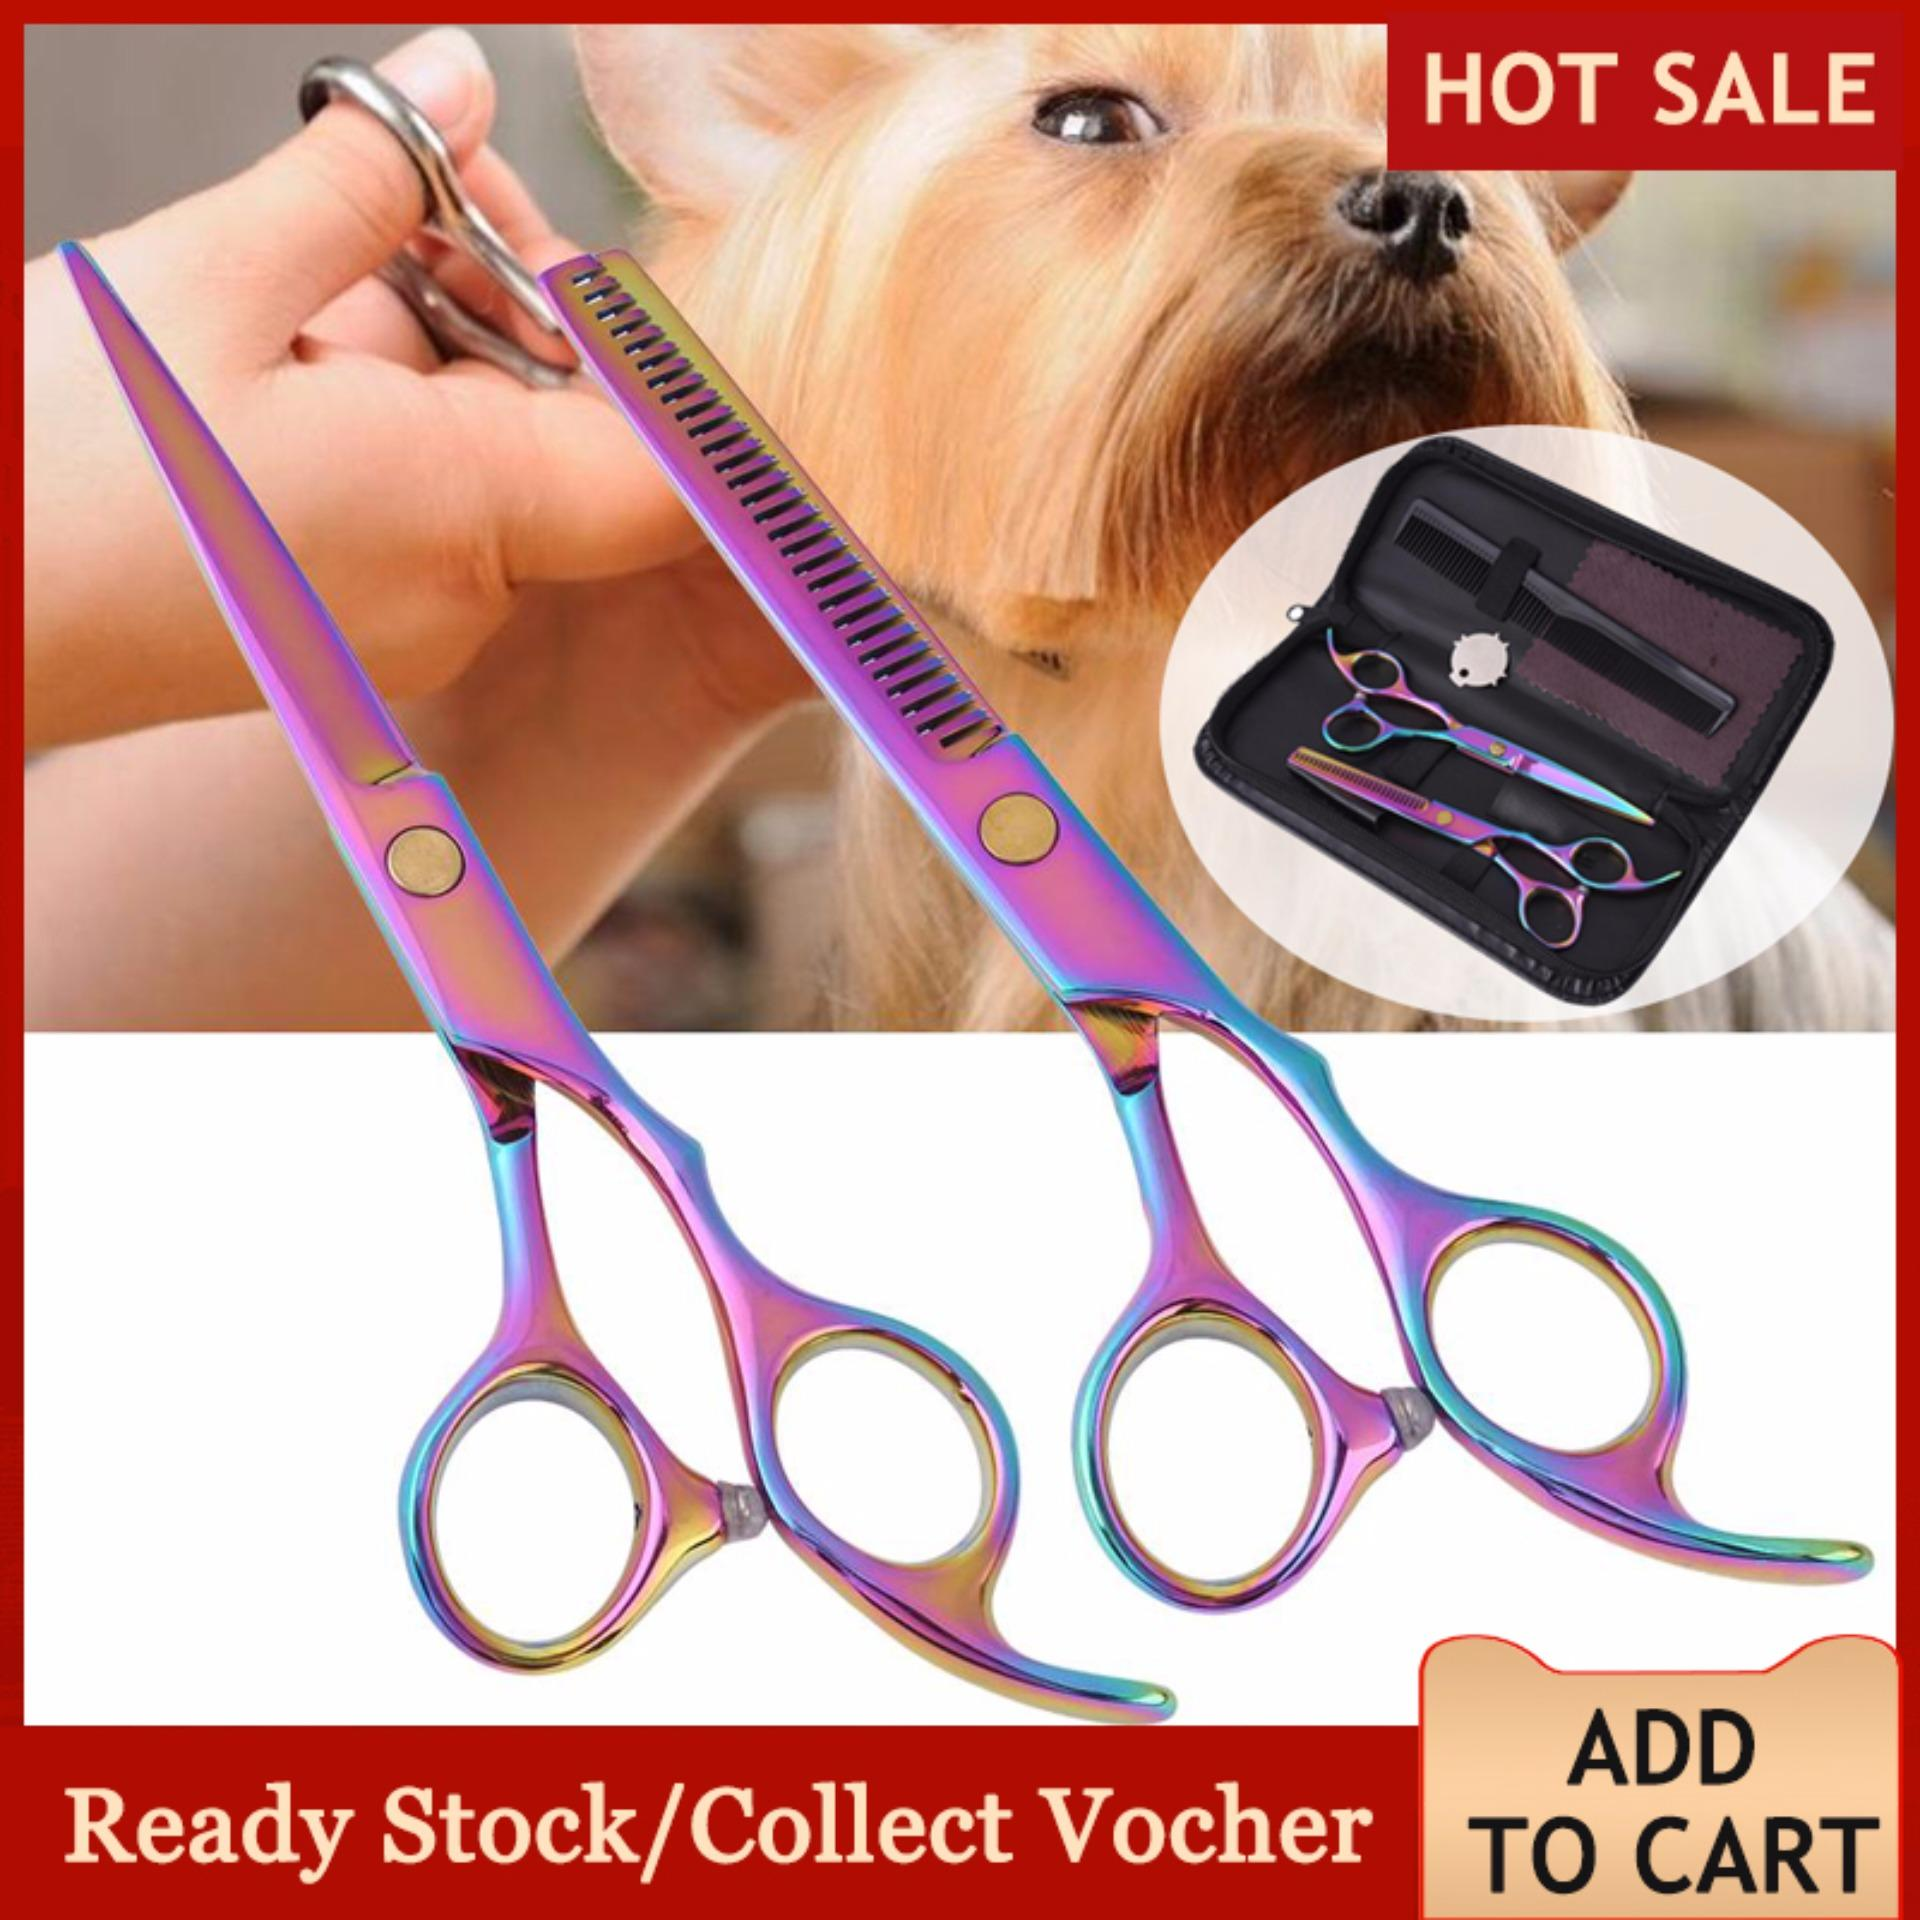 Hair Removal Accessories Brands Body Hair Removal On Sale Prices